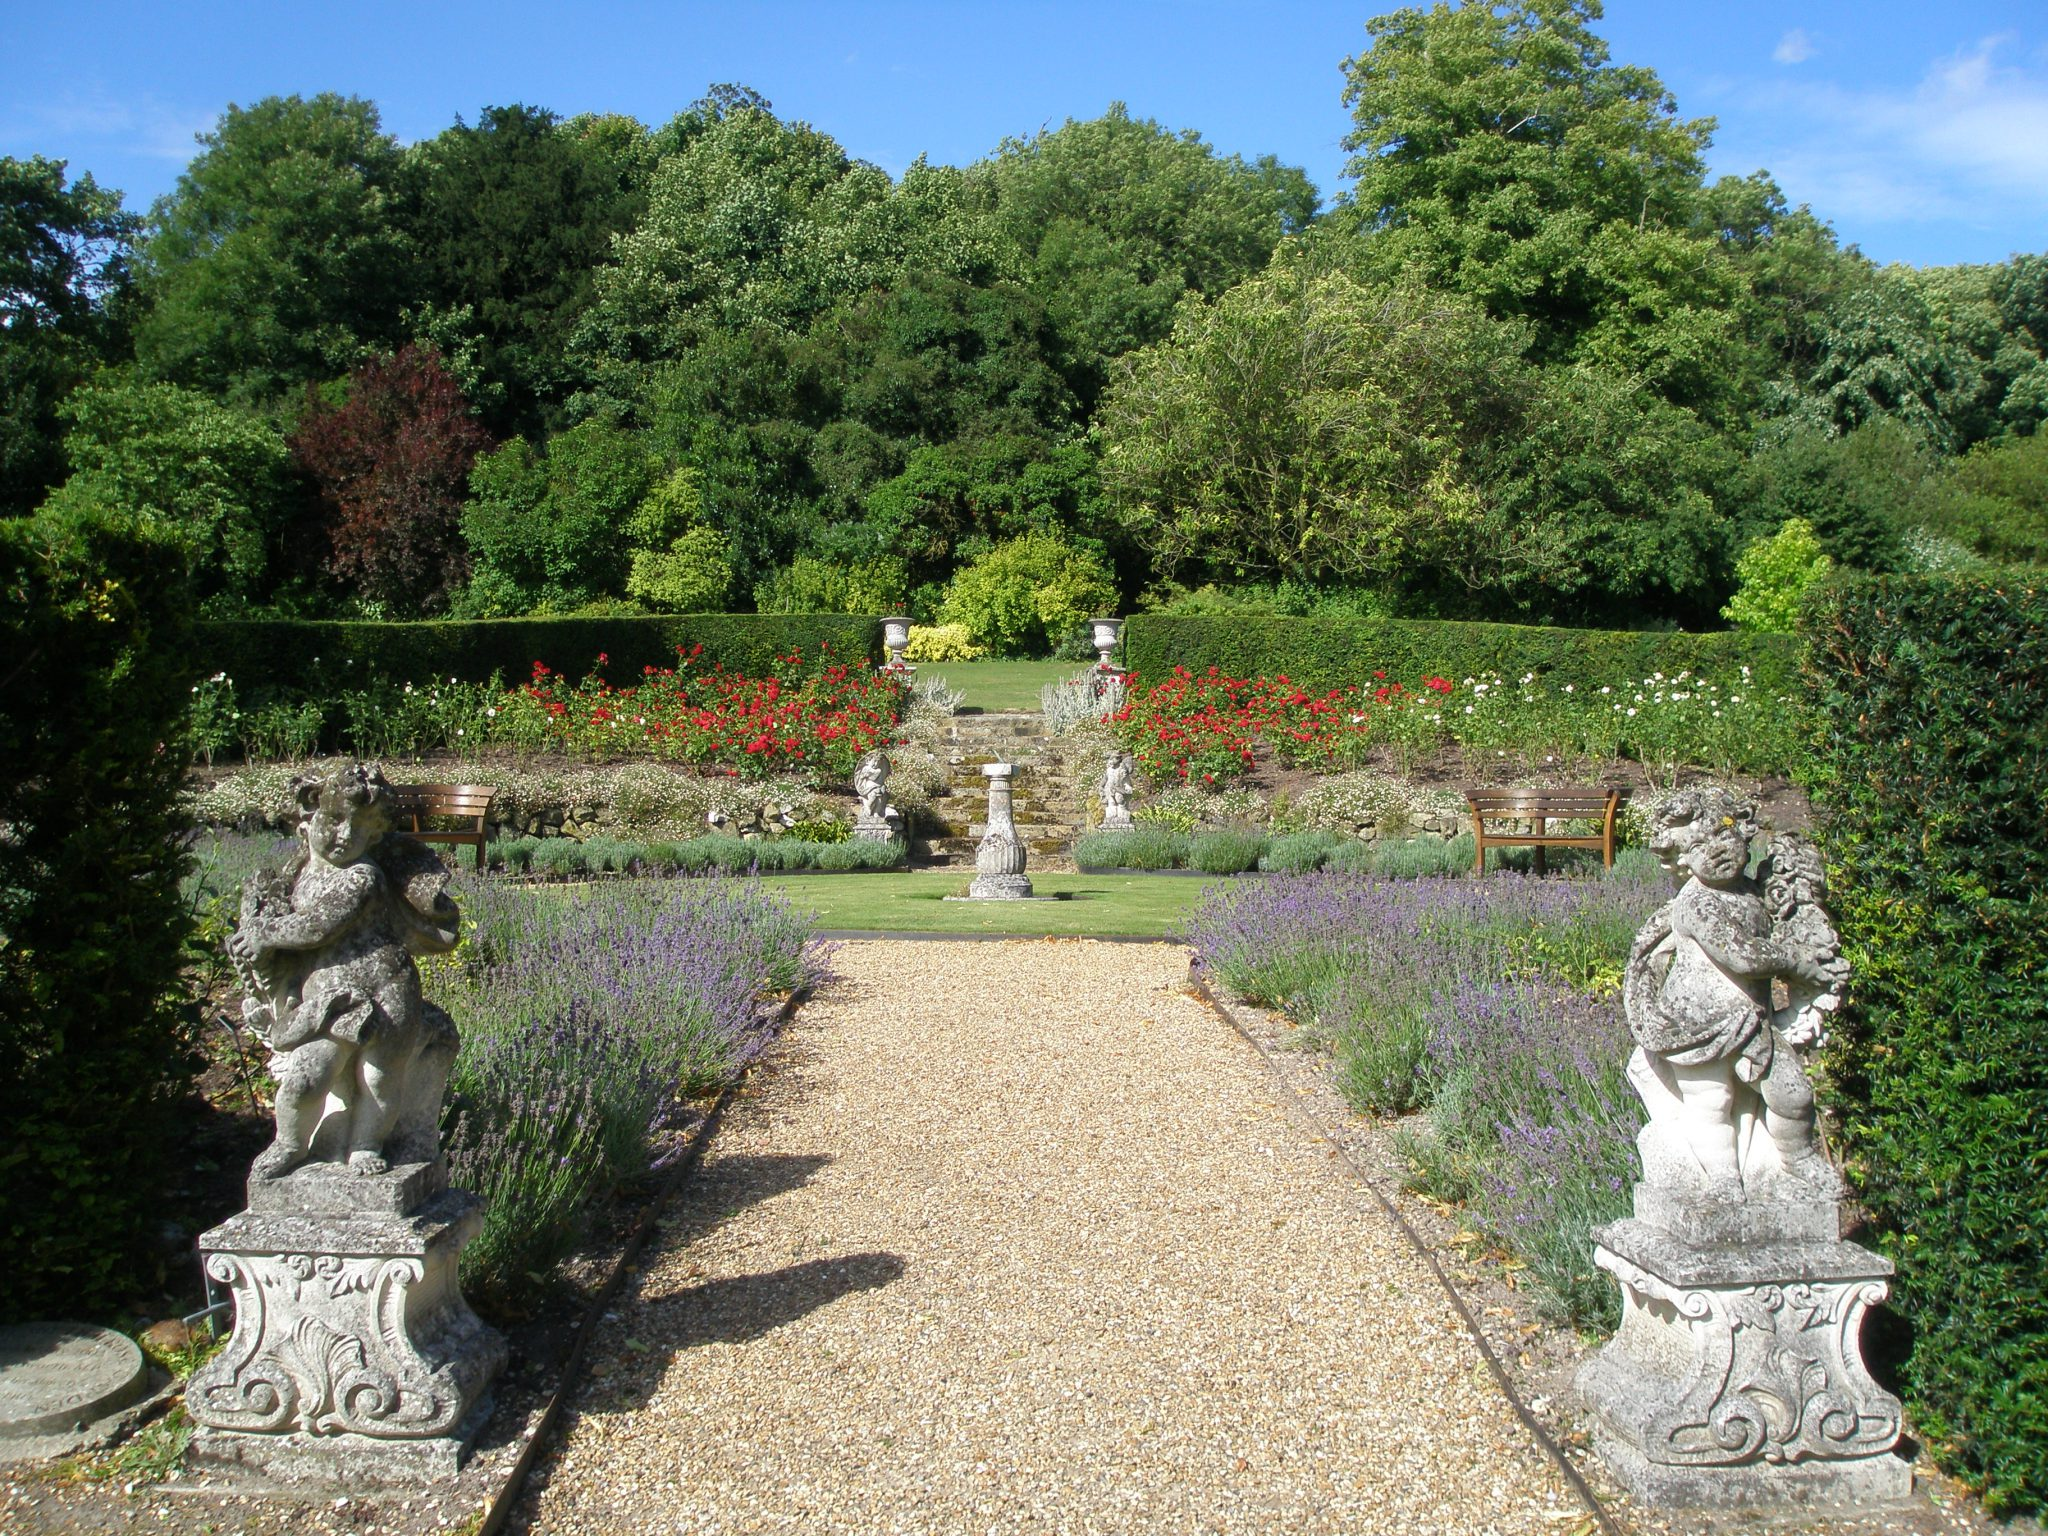 The Golden Jubilee Rose Garden